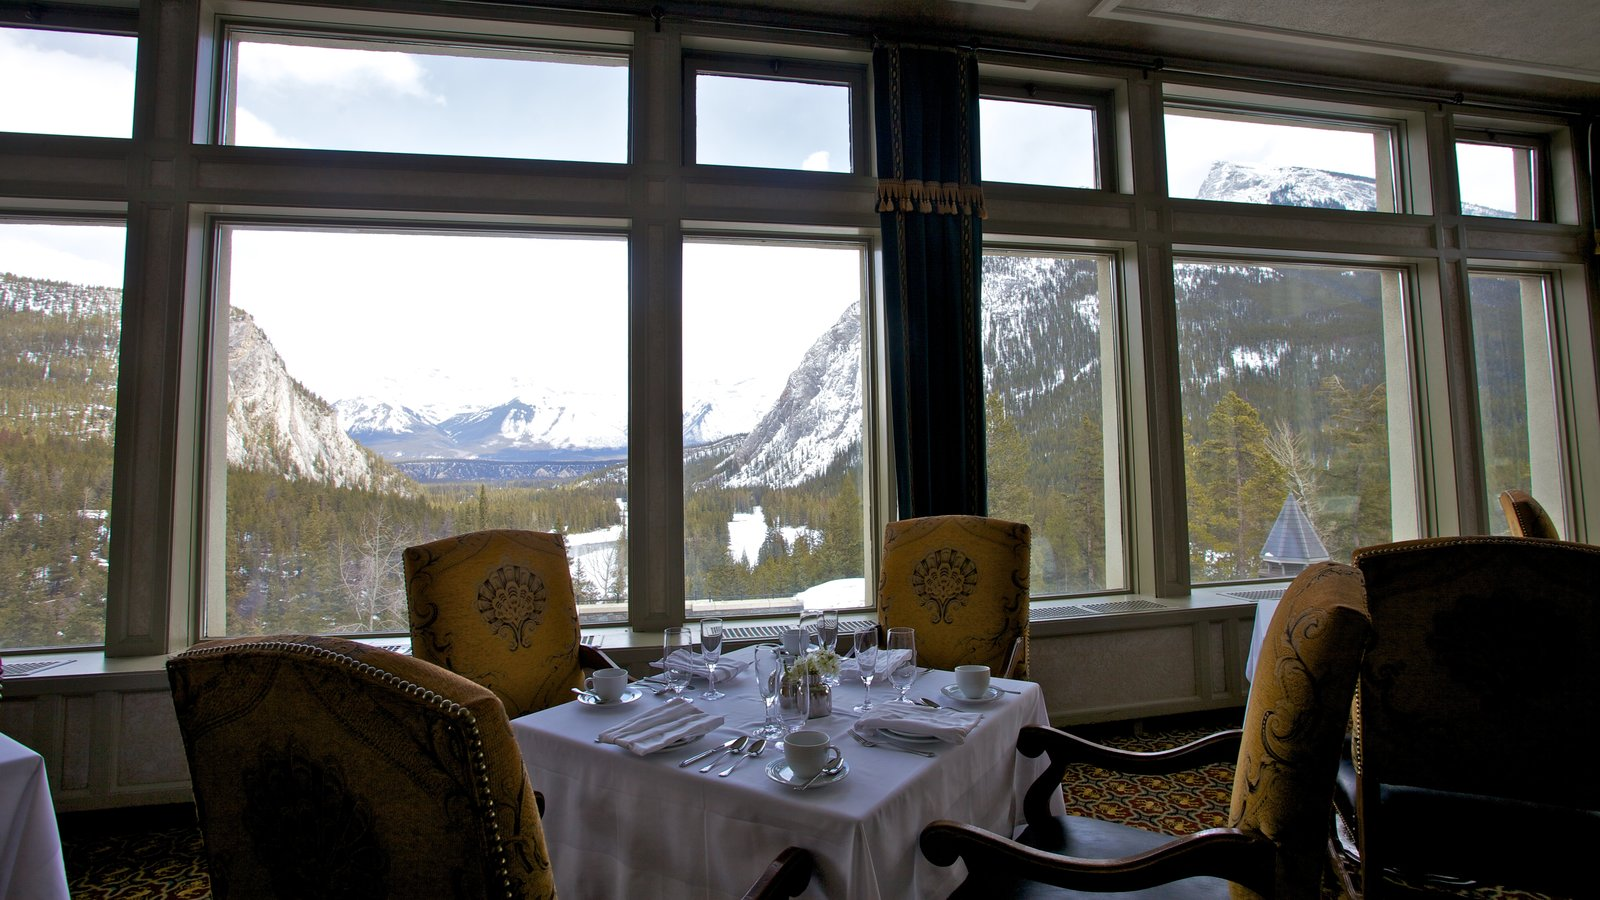 Banff National Park showing interior views, dining out and snow